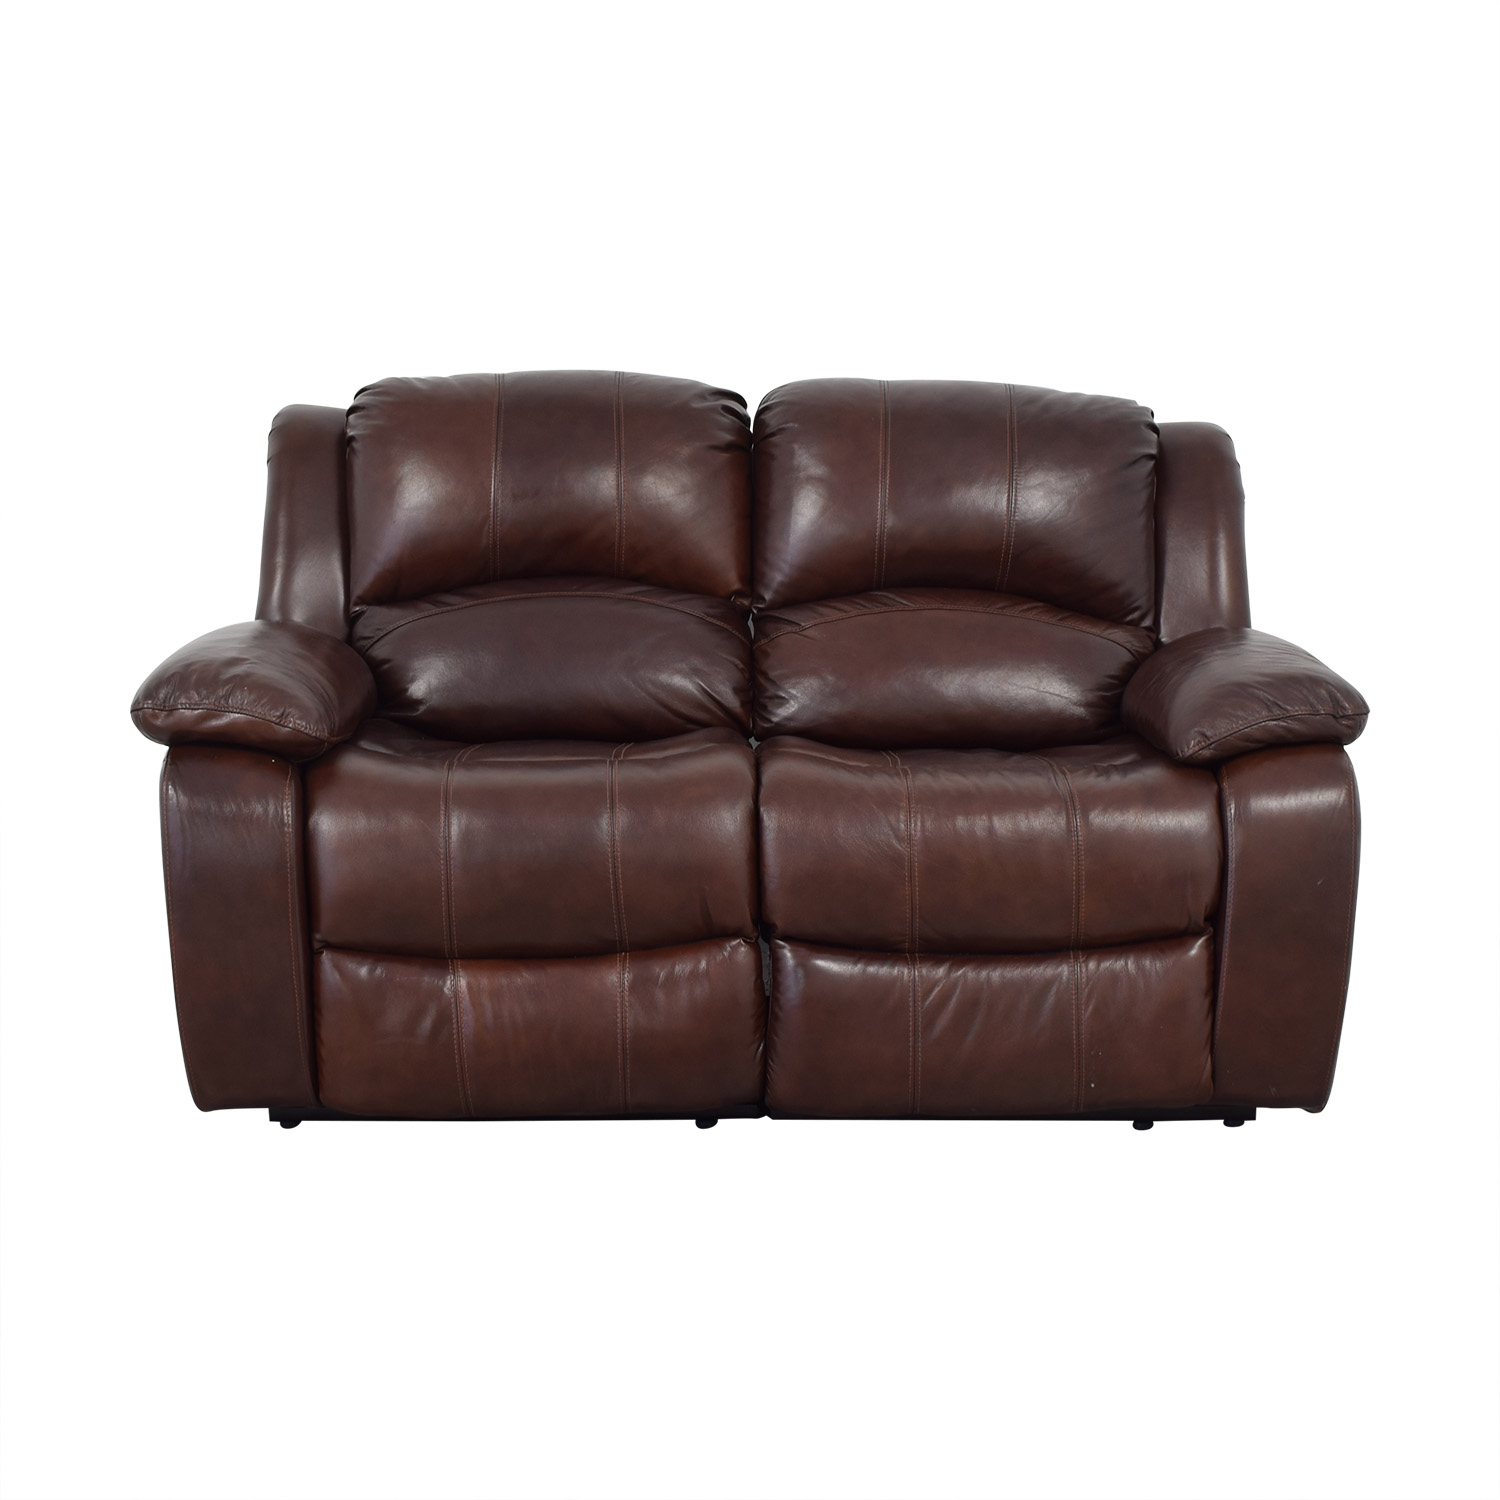 Raymour & Flanigan Raymour & Flanigan Dual Reclining Loveseat second hand